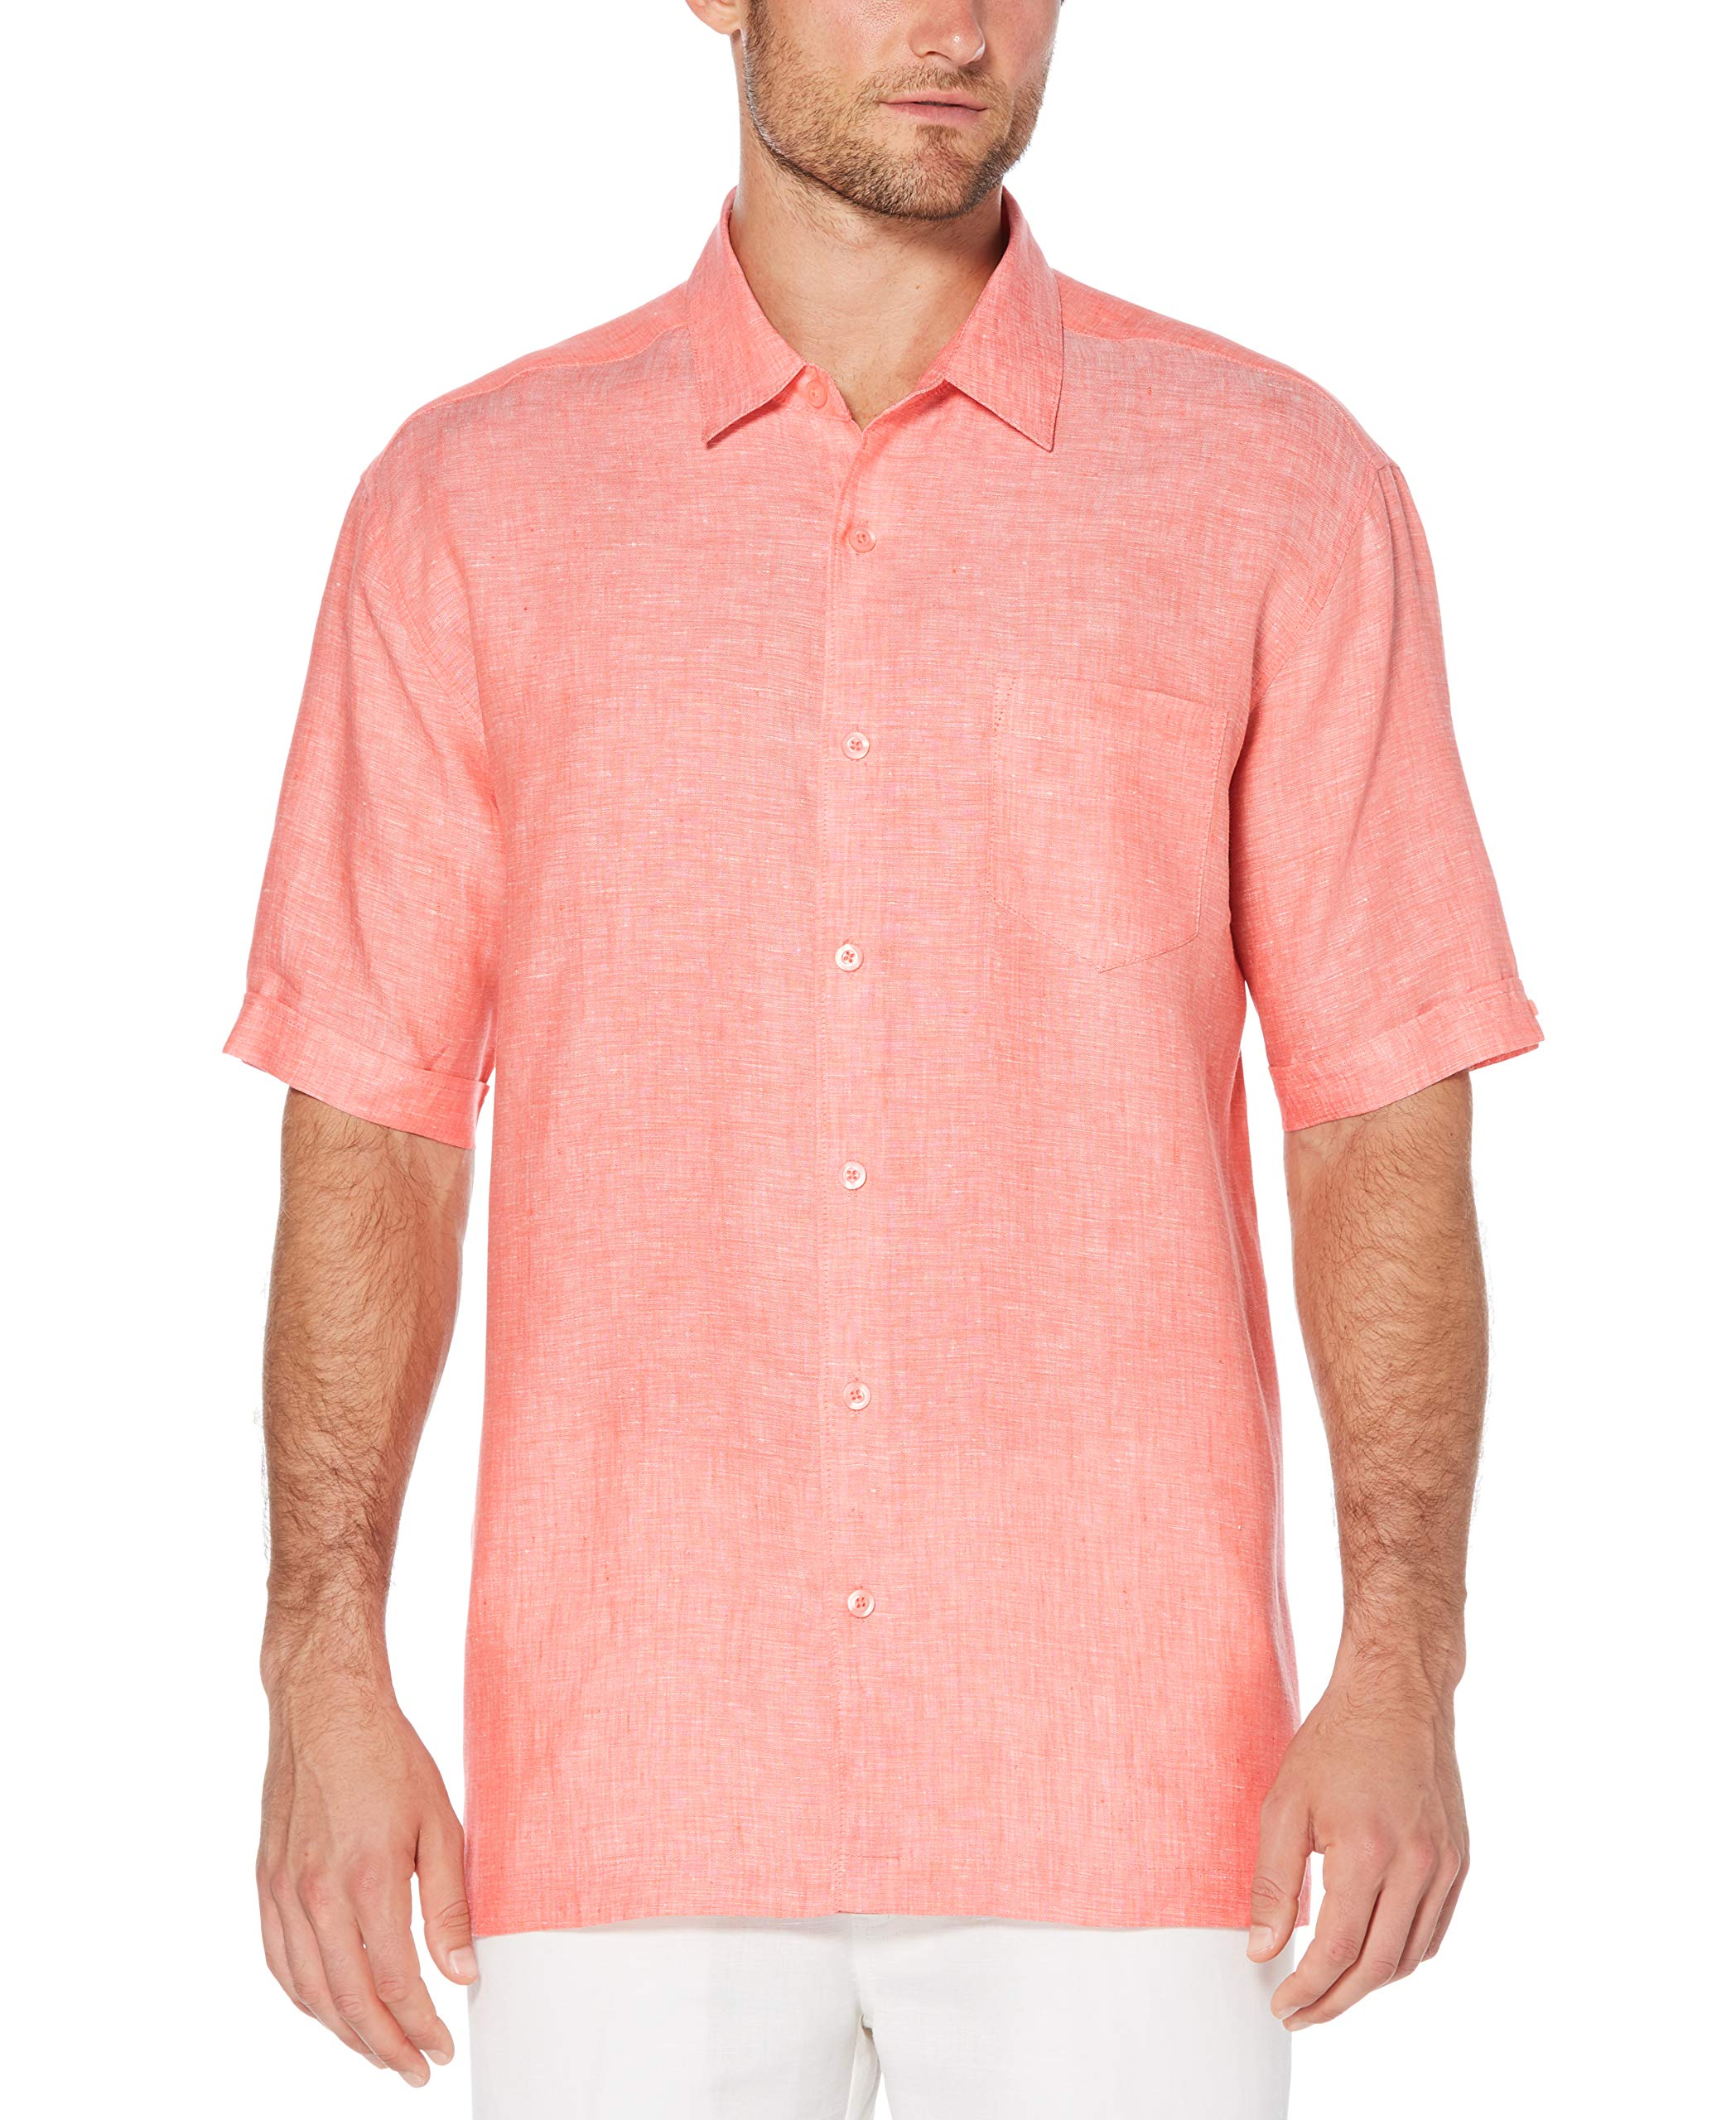 Cubavera Men's Big and Tall Short Sleeve 100% Linen Cross-Dyed Button-Down Shirt with Pocket